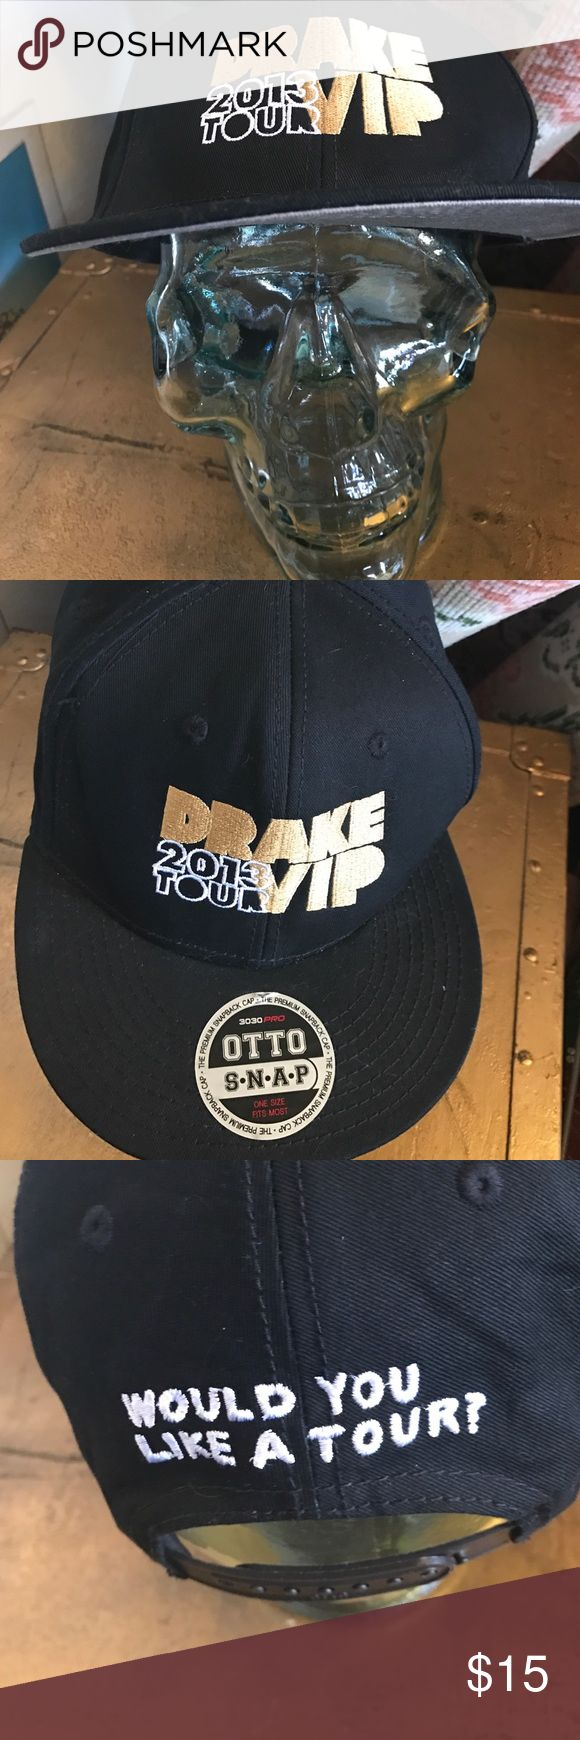 Drake tour hat Tour hat from 2013. One for the books 📚 open to offers ❌not urban outfitters ❌ Urban Outfitters Accessories Hats